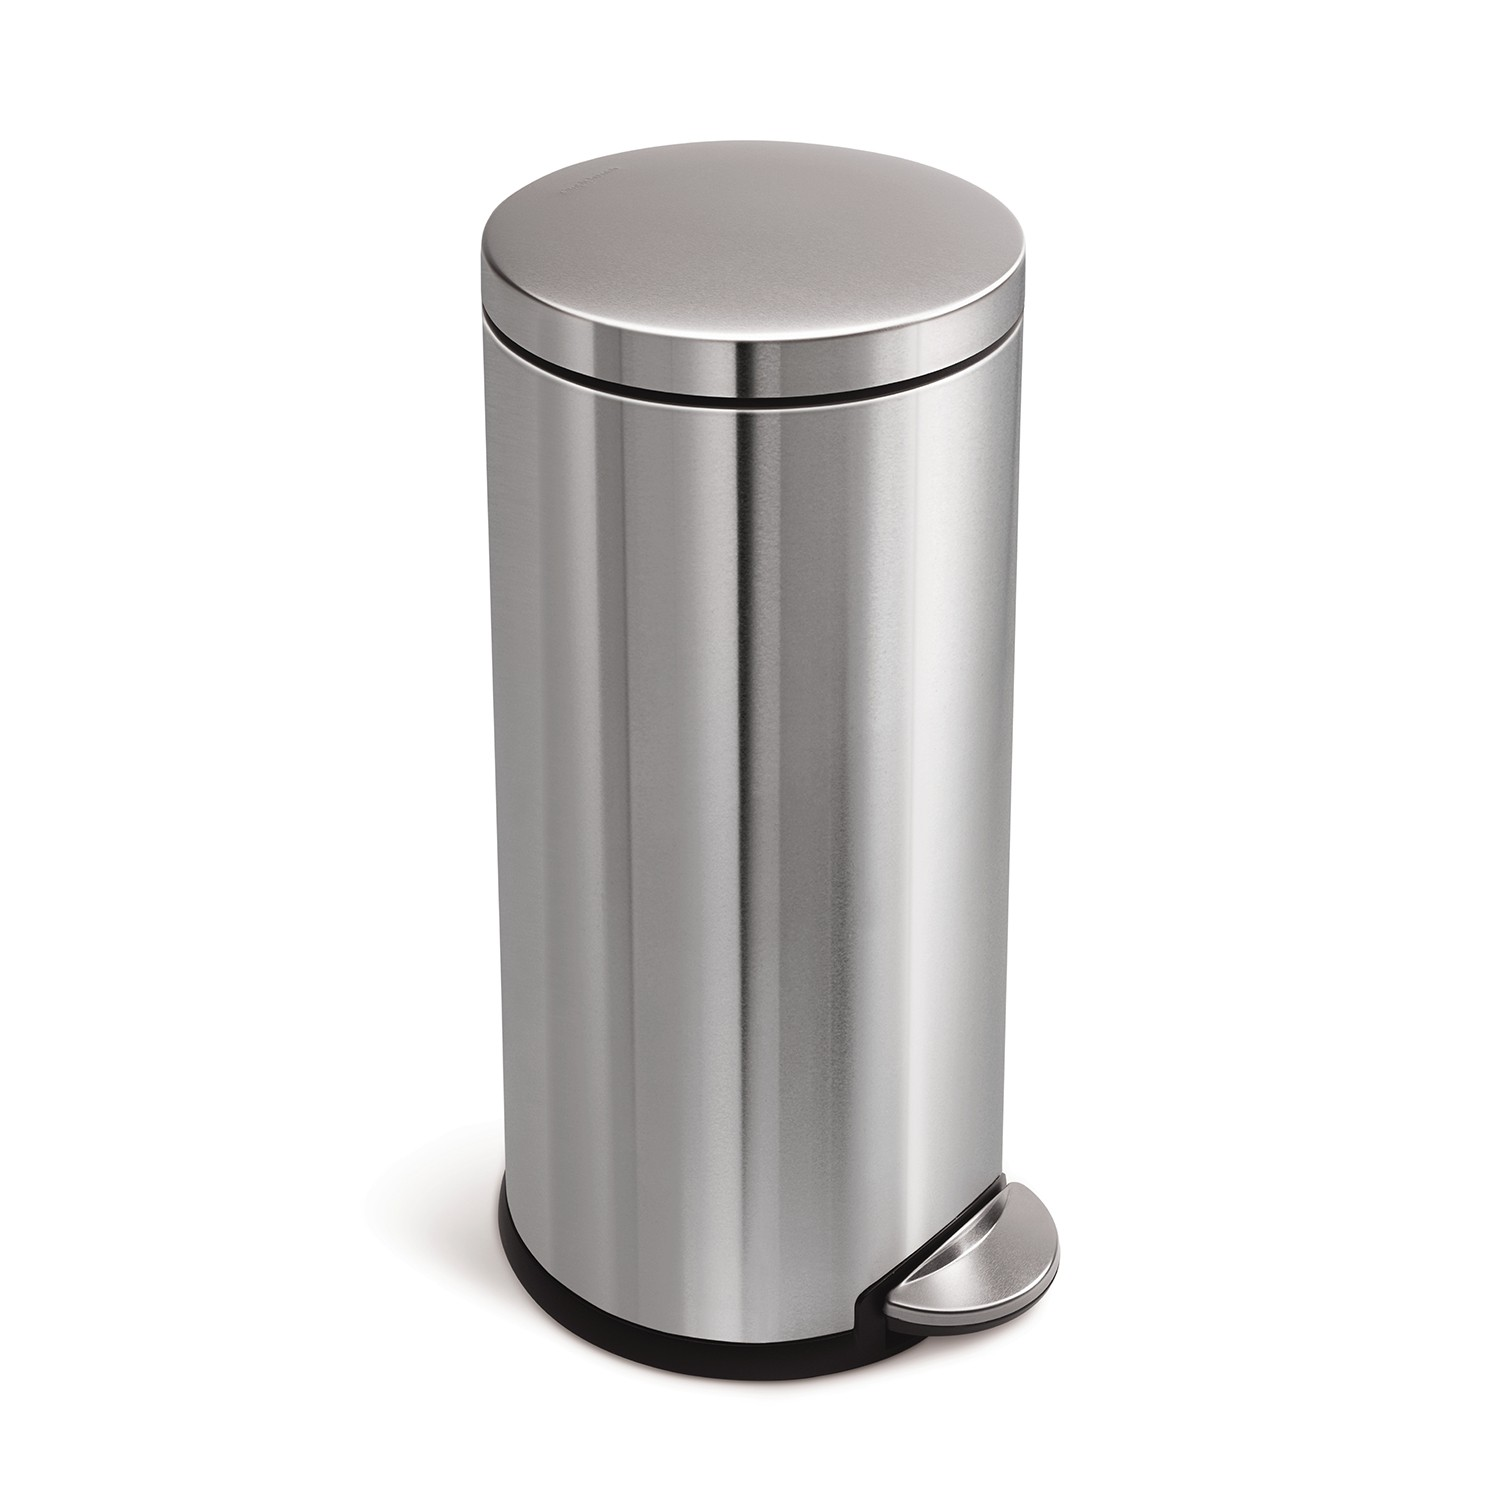 Simplehuman Round Pedal Bin 30l Brushed Stainless Steel